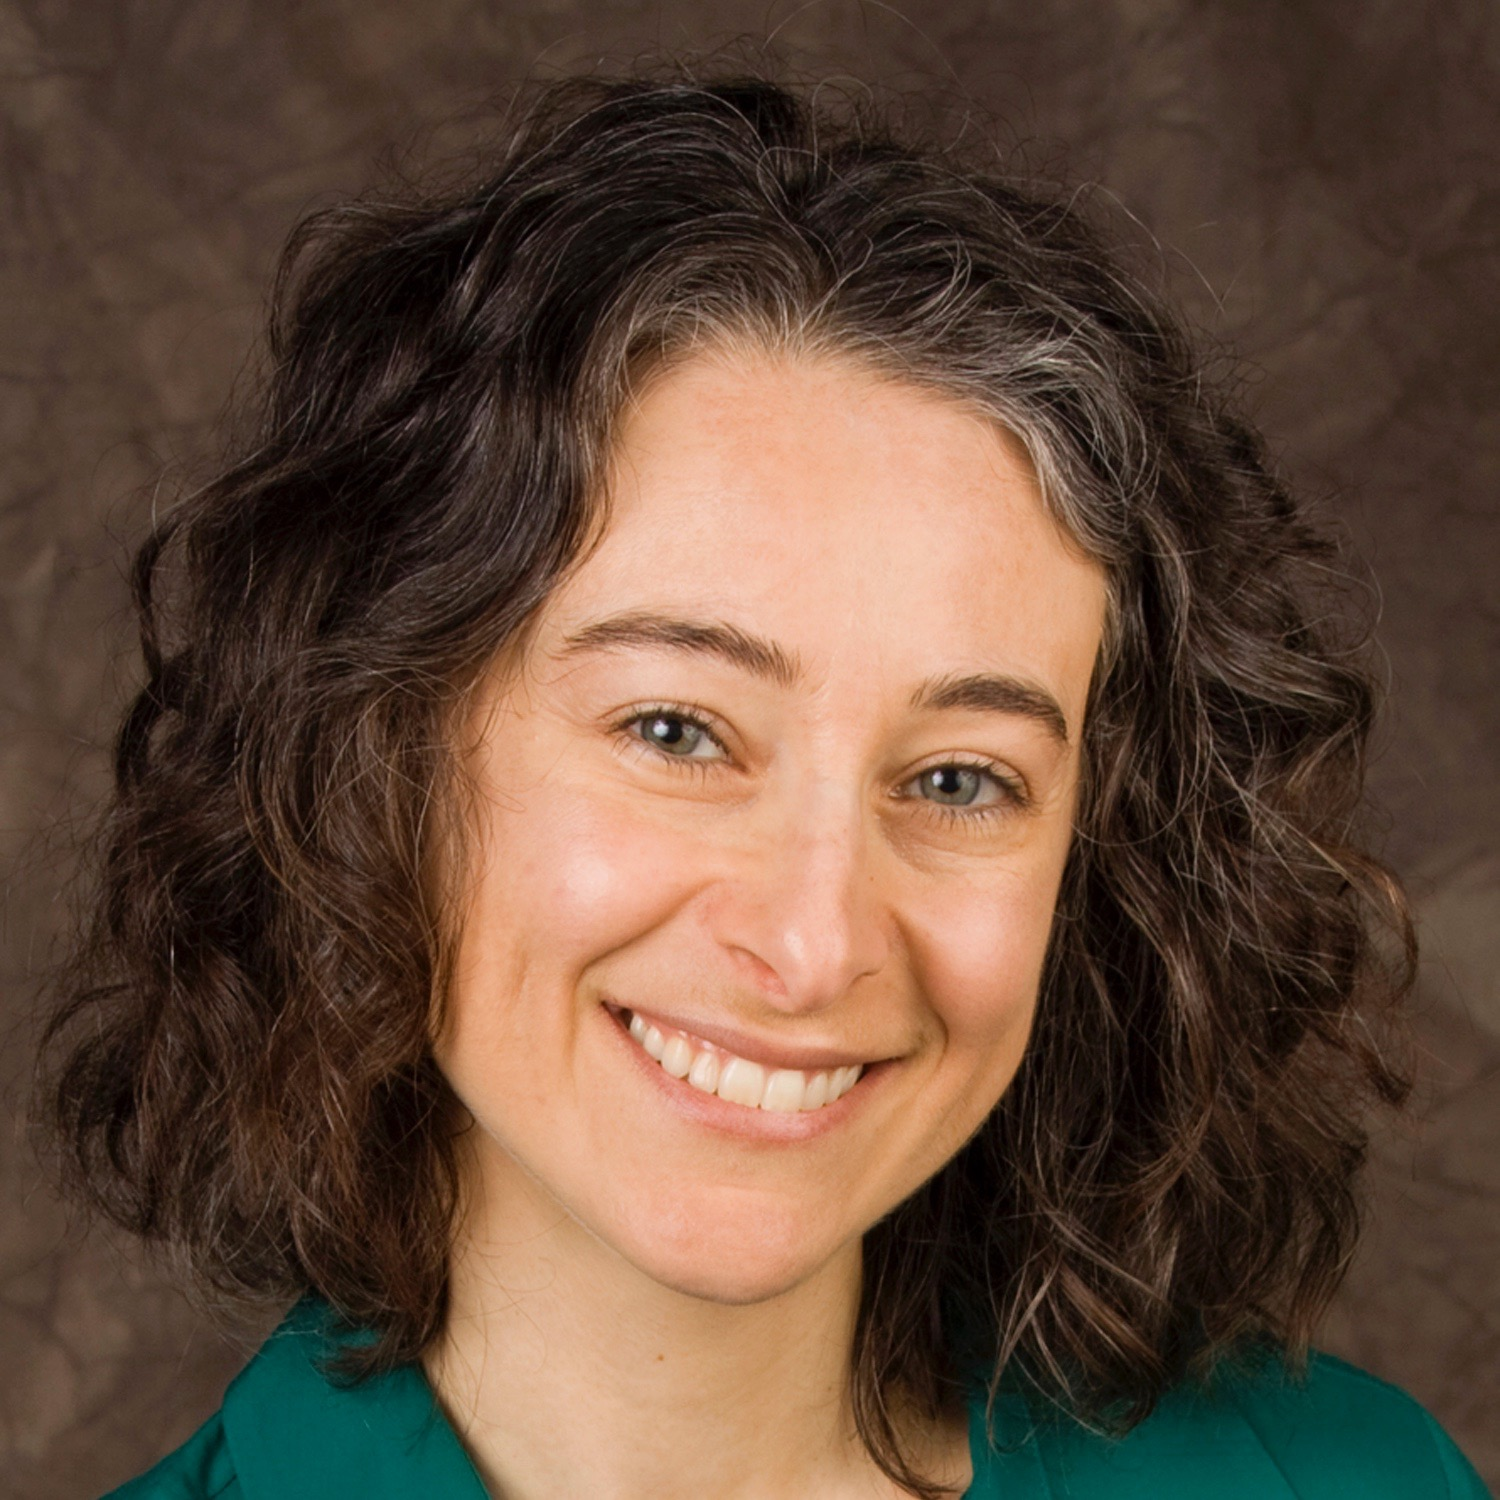 Adriana Manago, Ph.D.,  is an assistant professor in Psychology at UCSC.